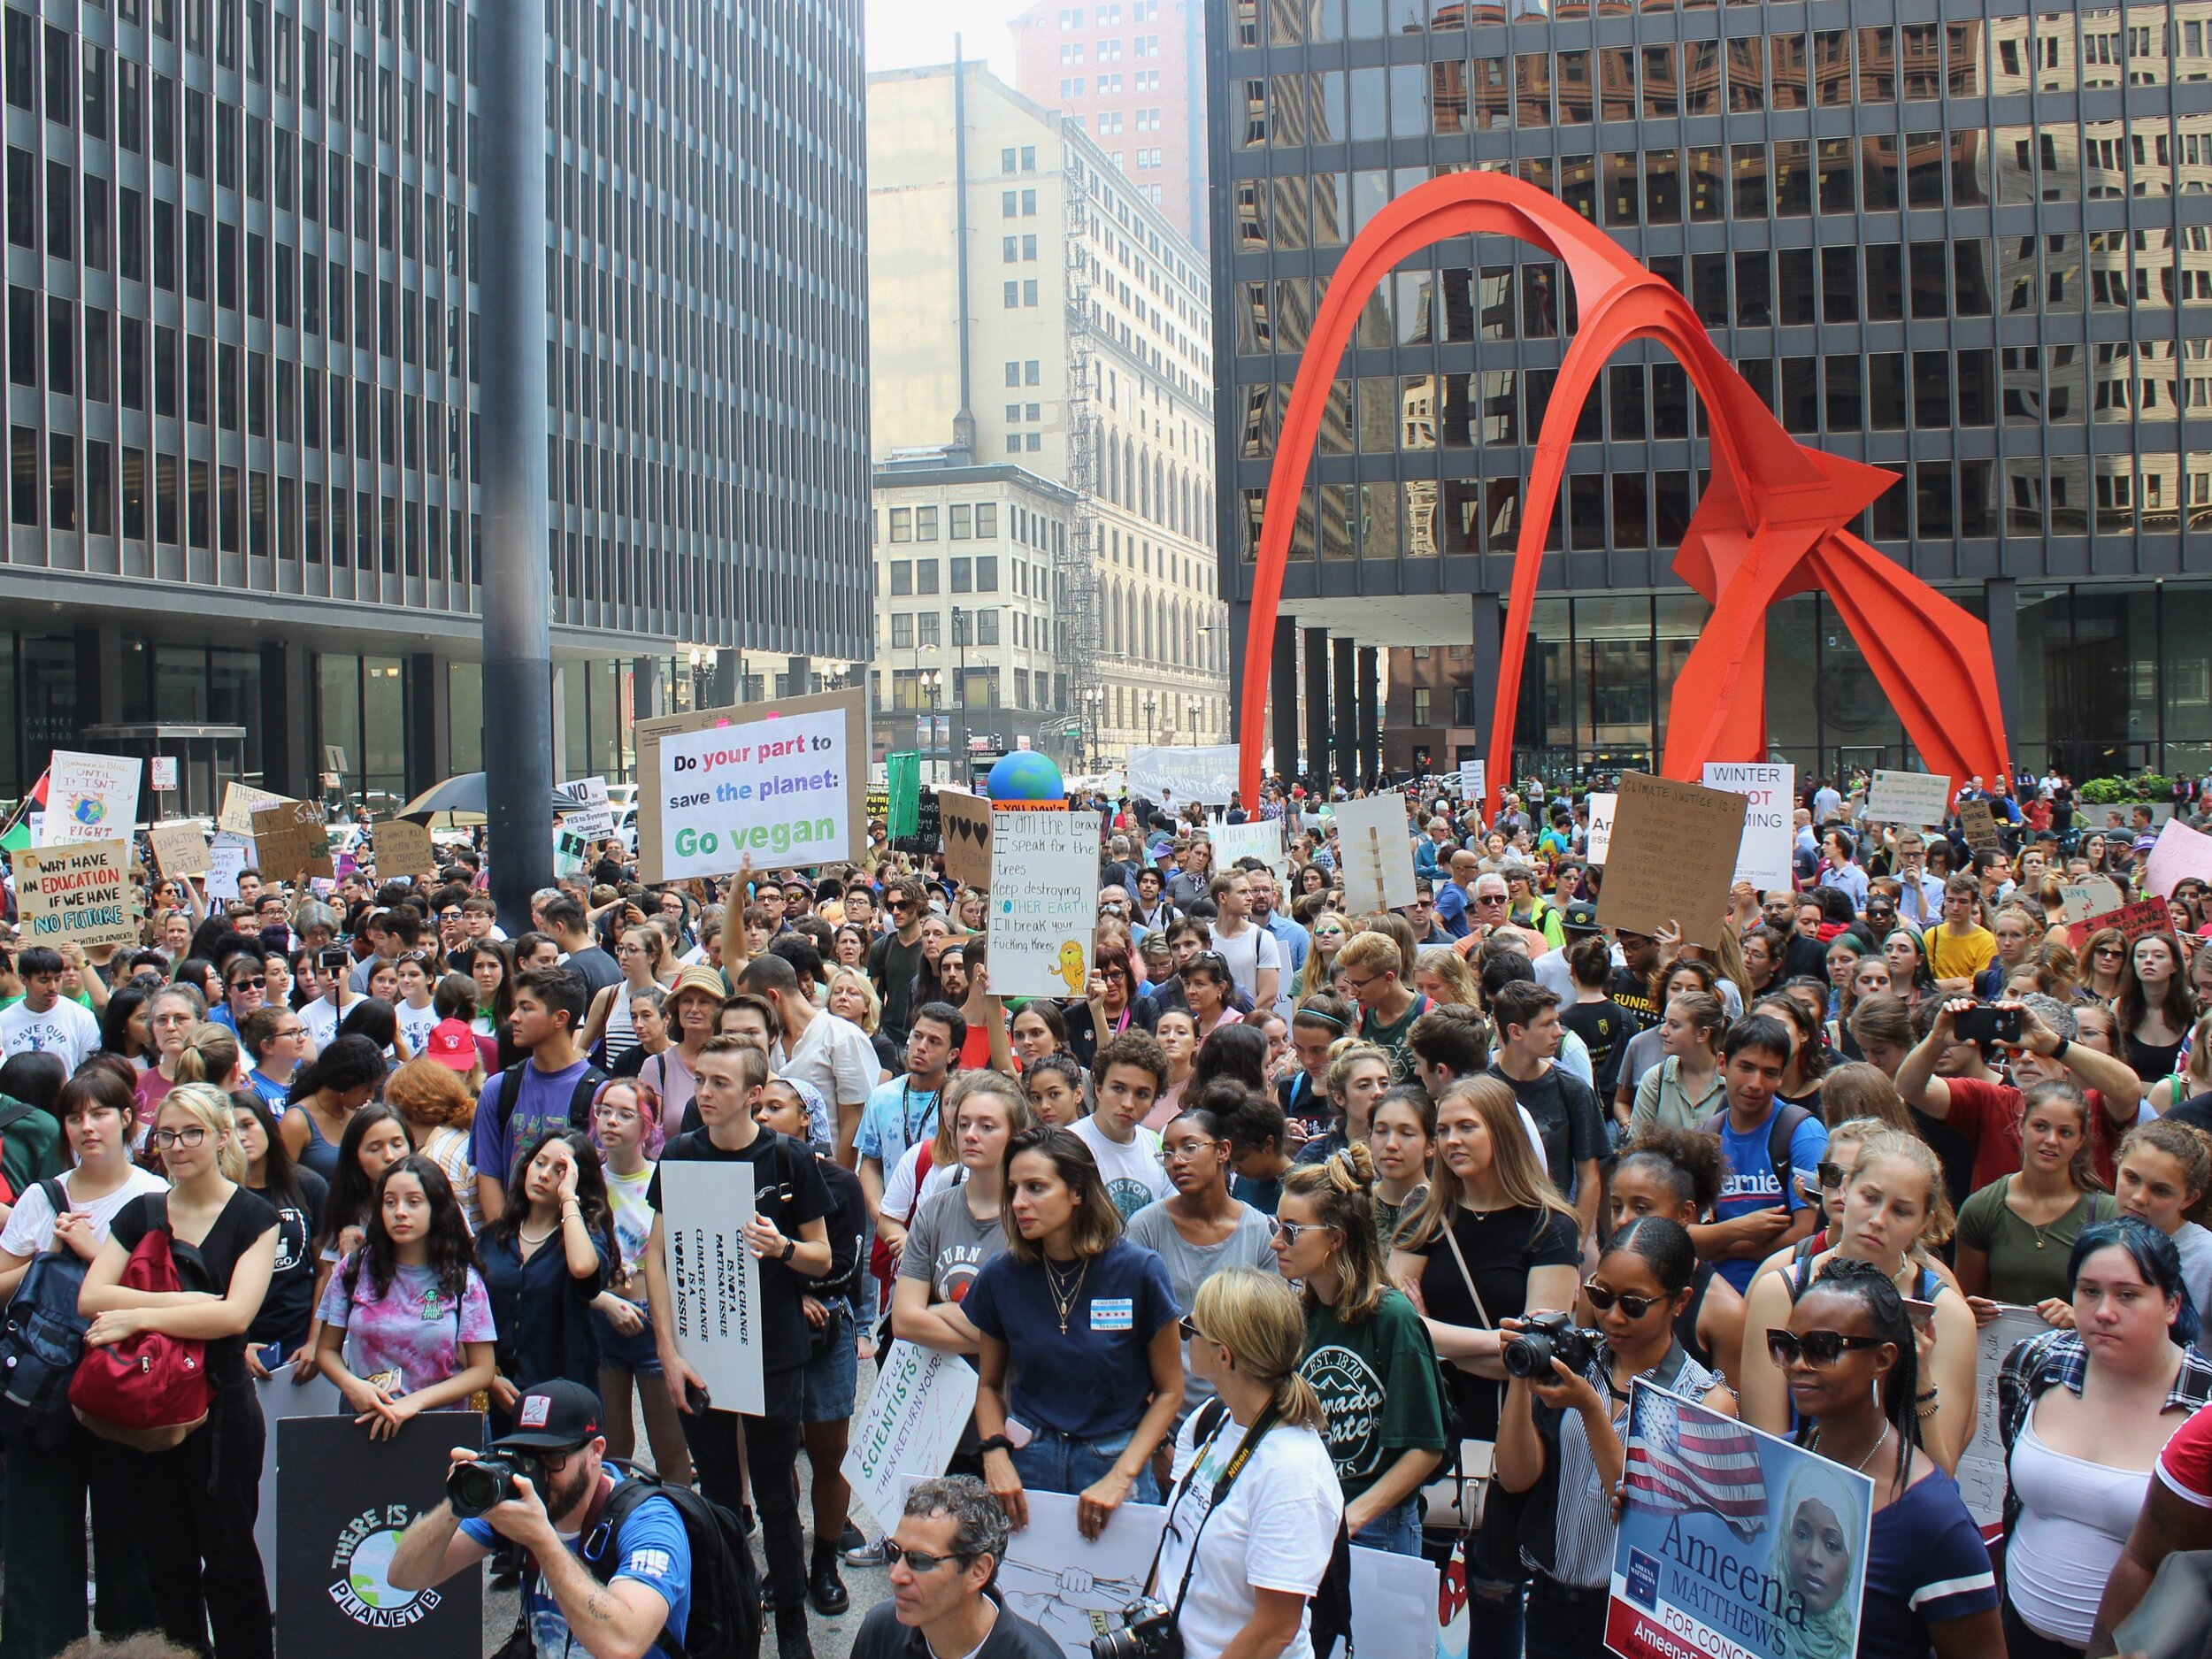 The assembled crowd at the end of the march packed Chicago's Federal Plaza. (One Illinois/Ted Cox)